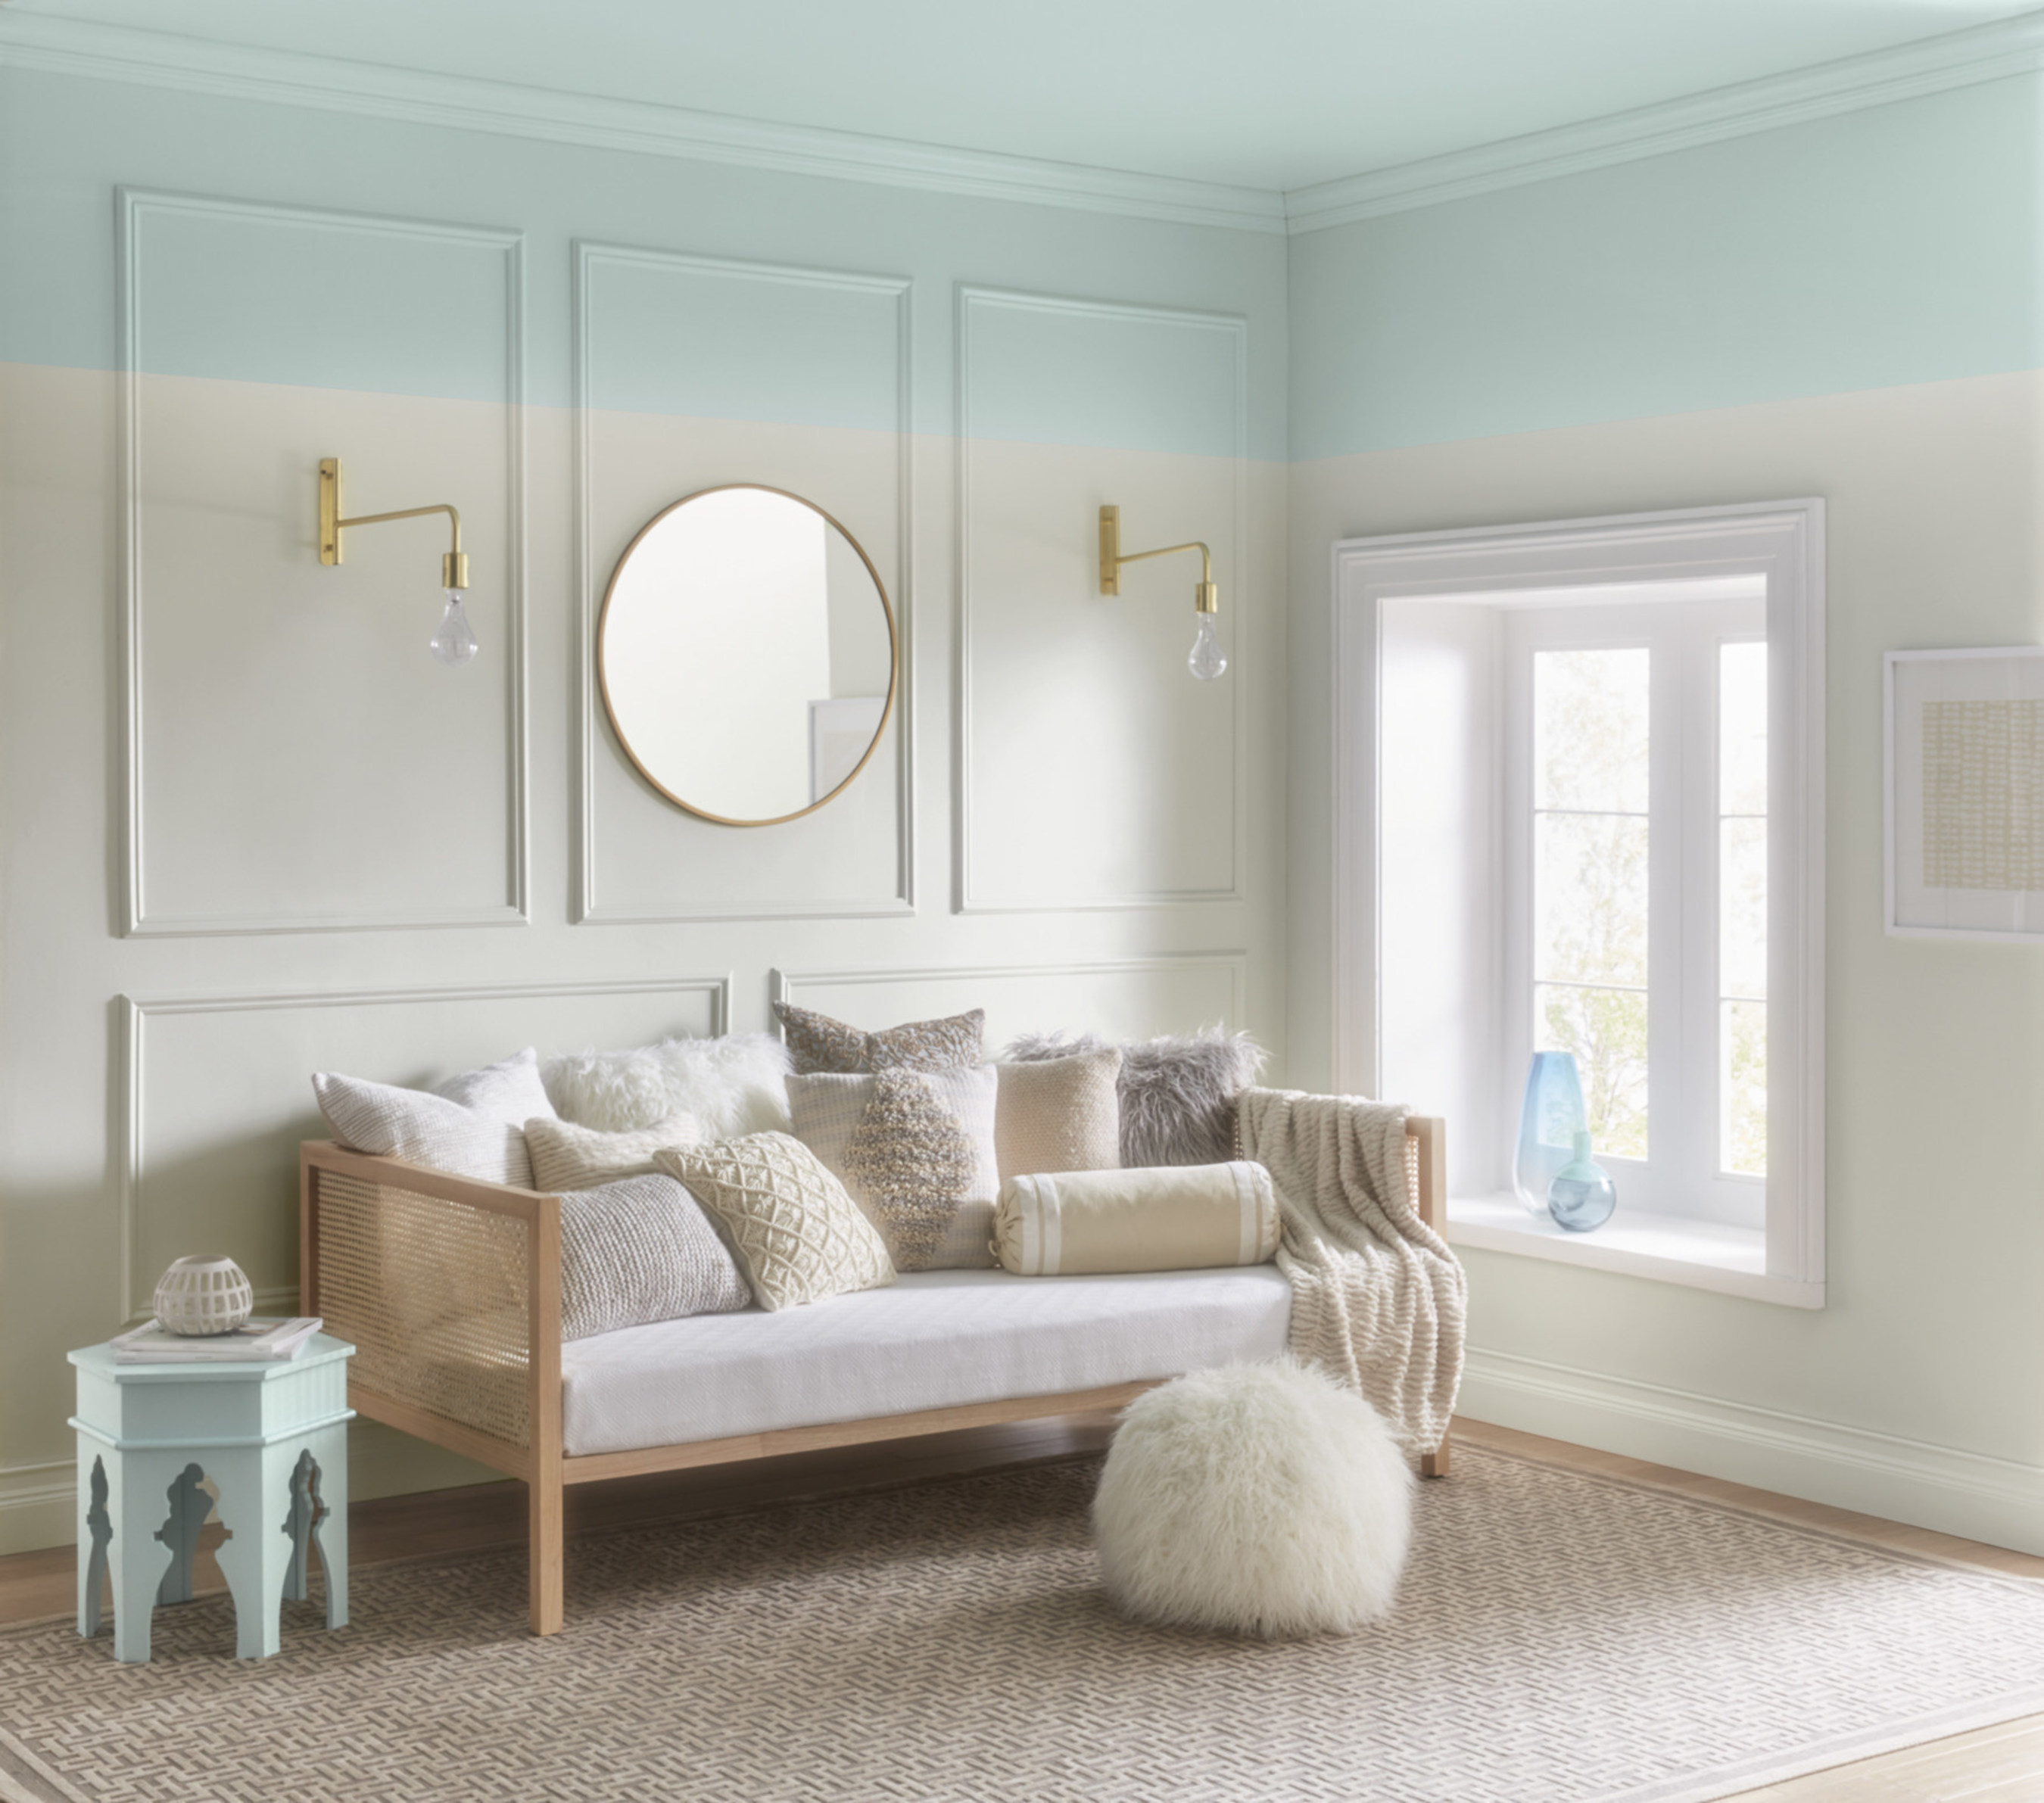 """Lowe's 5002-5B Dreamy Clouds/ Ace: VR080E Snow in June/ Independent Retailers: V102-1 Snow in June/ This dreamy sky blue is soothing, restful and restorative. It reflects today's spotlight on sleep and its importance in health and productivity. """"This light, airy blue is instantly calming and helps to restore natural rhythms,"""" said Kim."""